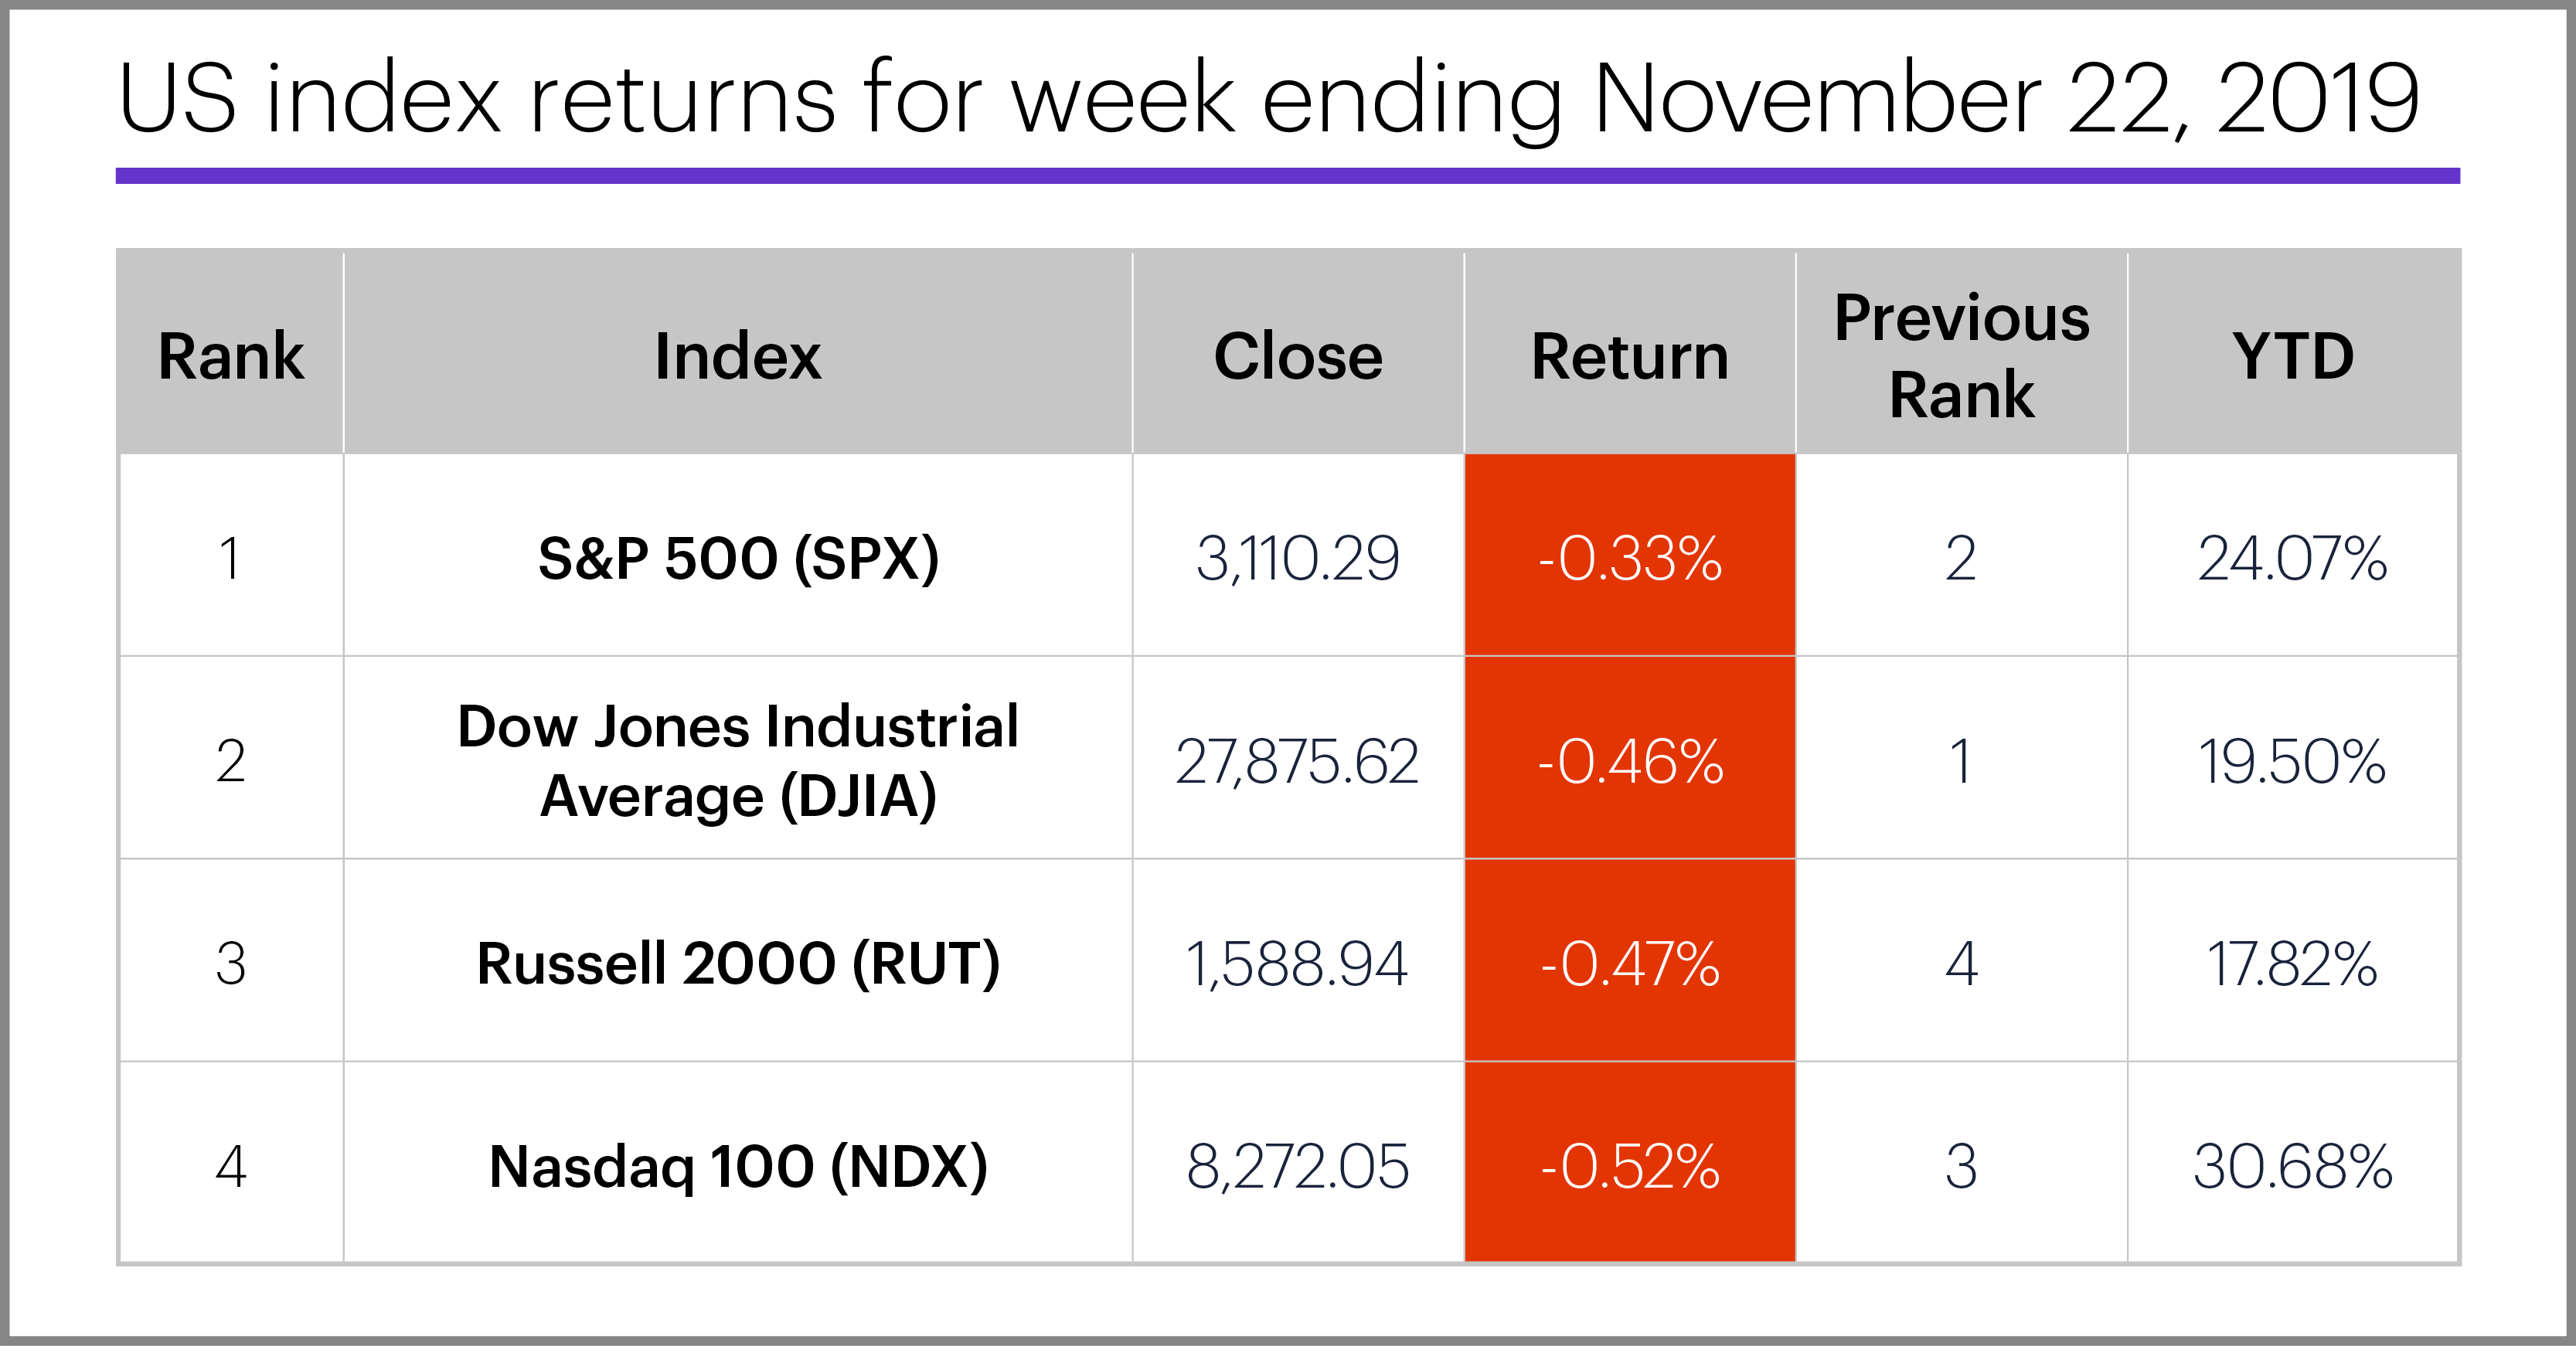 US stock index performance table for week ending 11/22/19. S&P 500 (SPX), Nasdaq 100 (NDX), Russell 2000 (RUT), Dow Jones Industrial Average (DJIA).